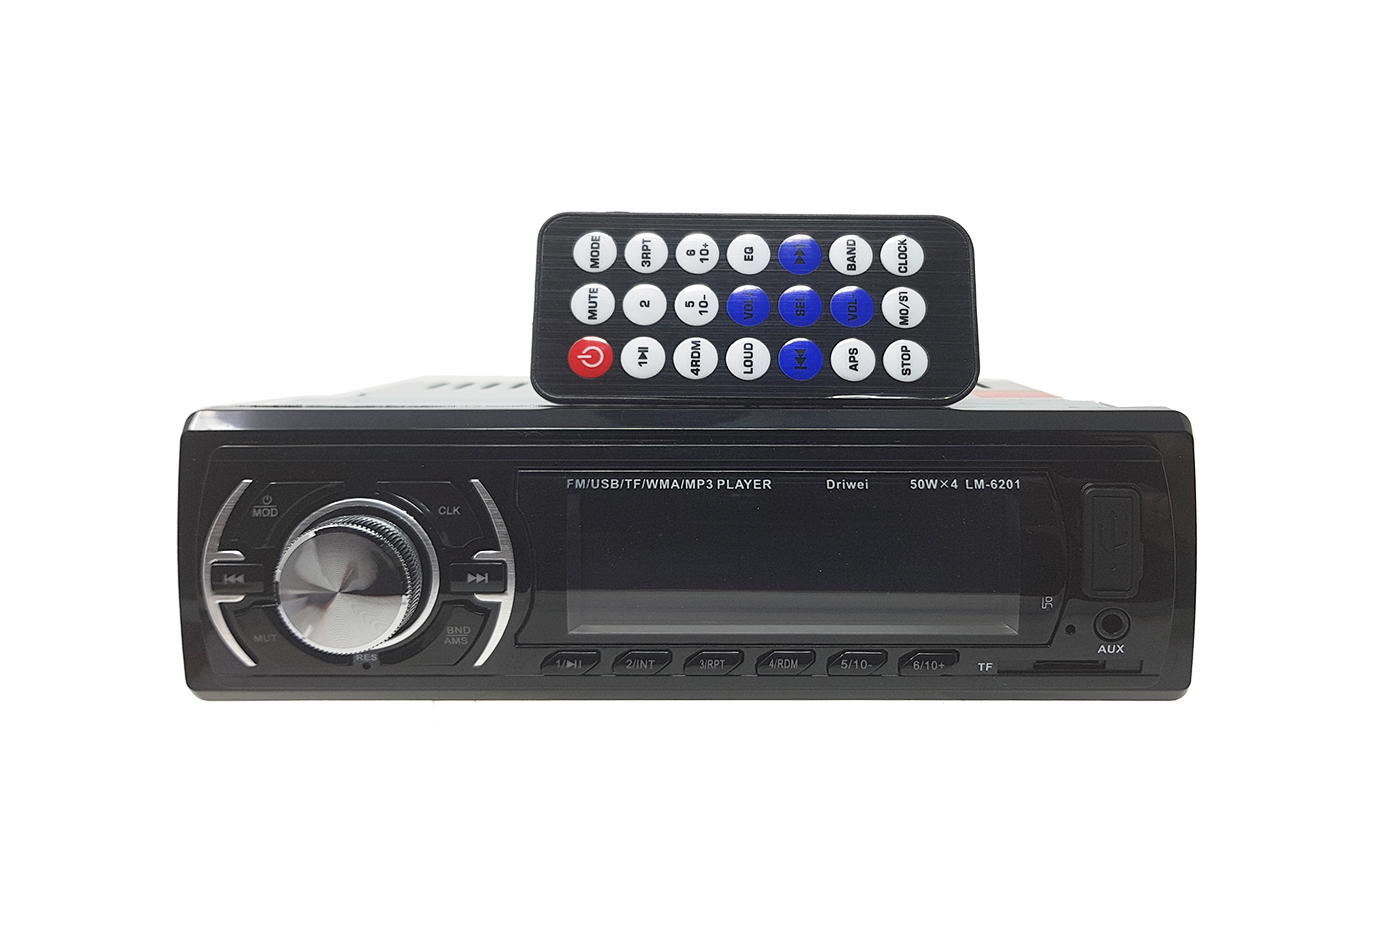 Autoradio universale stereo auto radio fm mp3 player sd usb aux LM6201